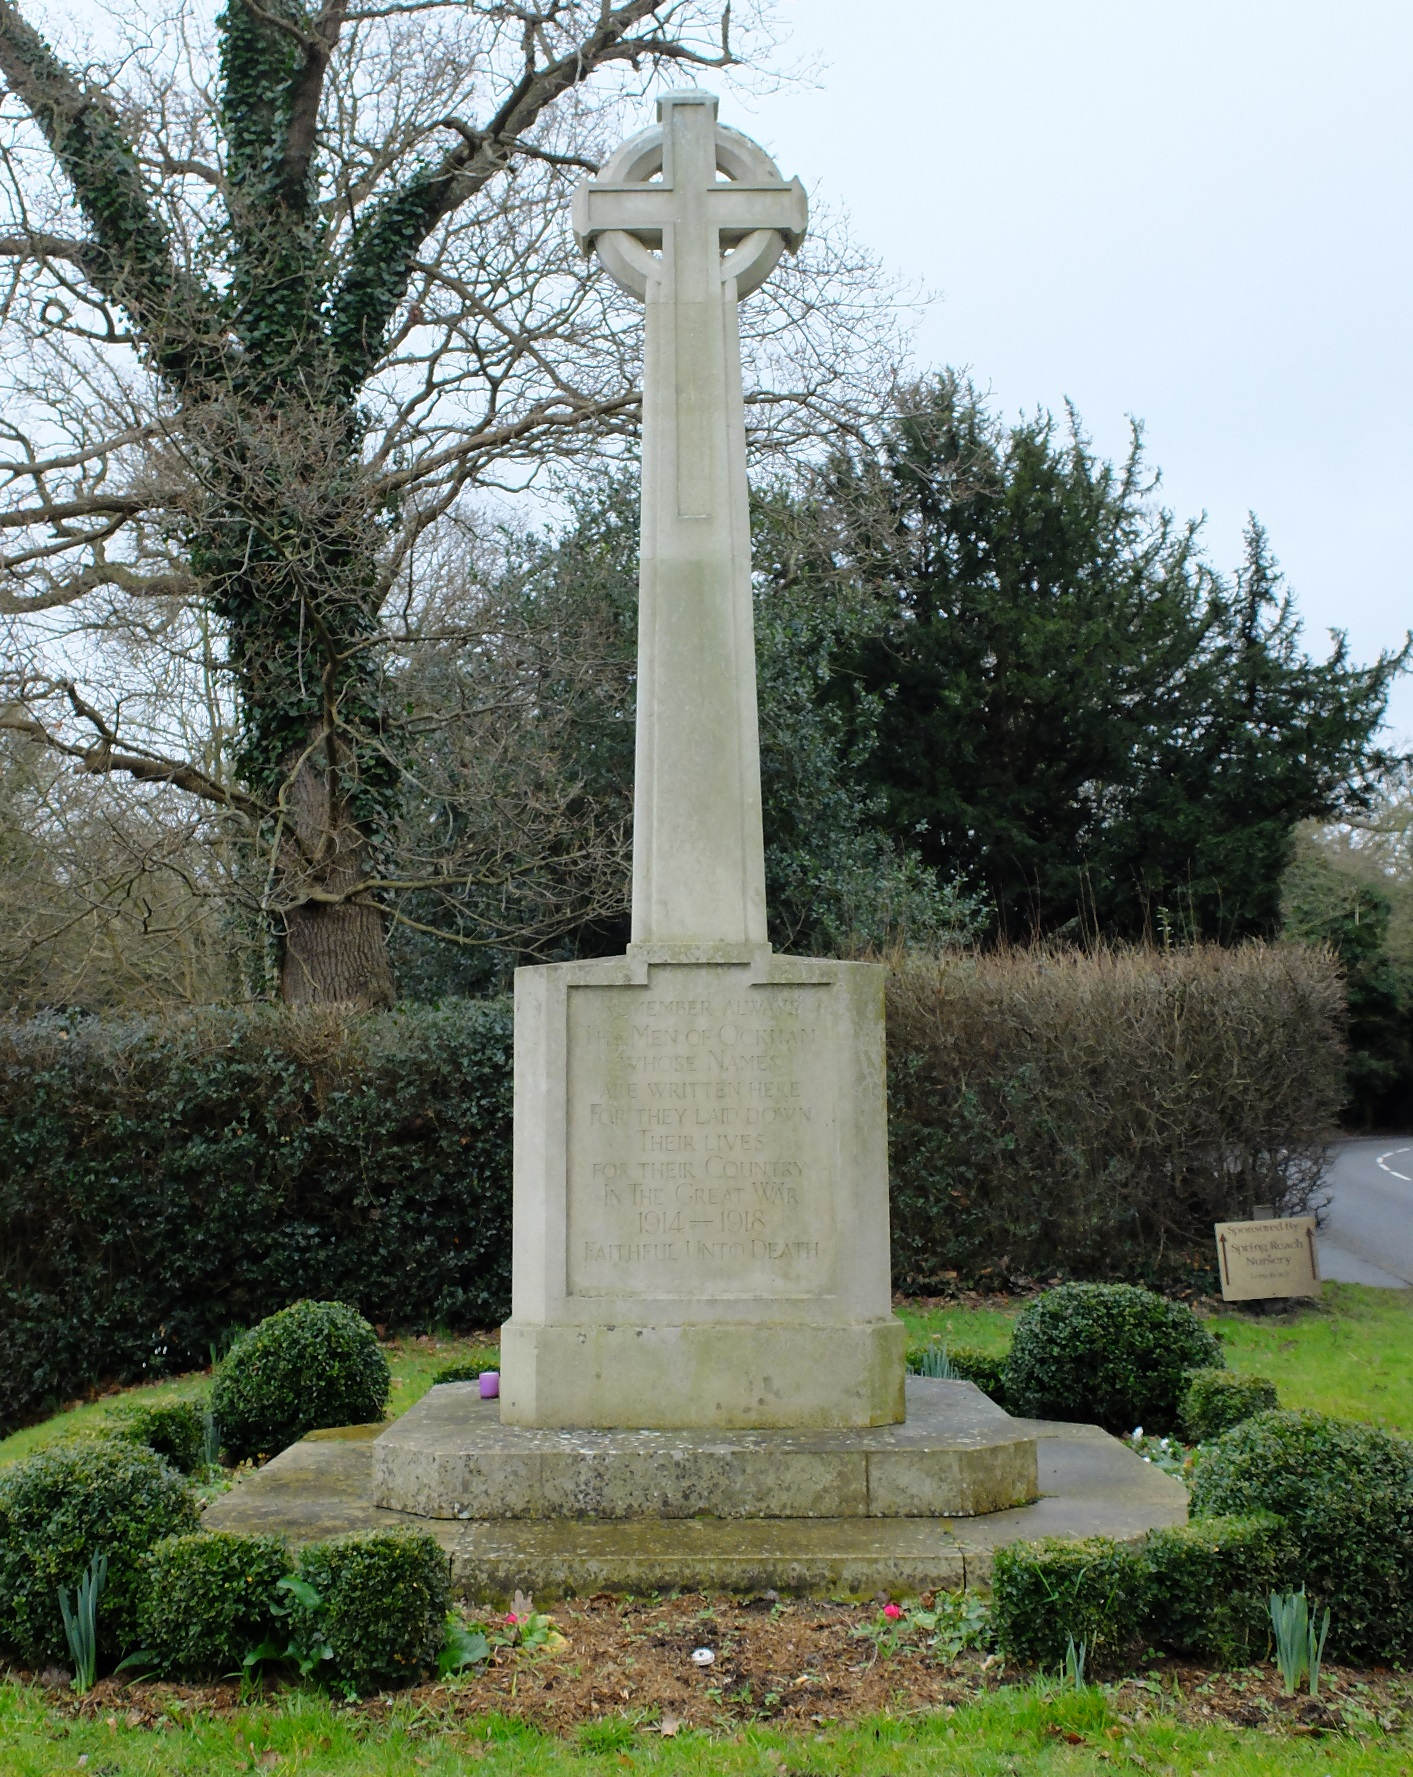 In memory of those who lost their lives in the Great War